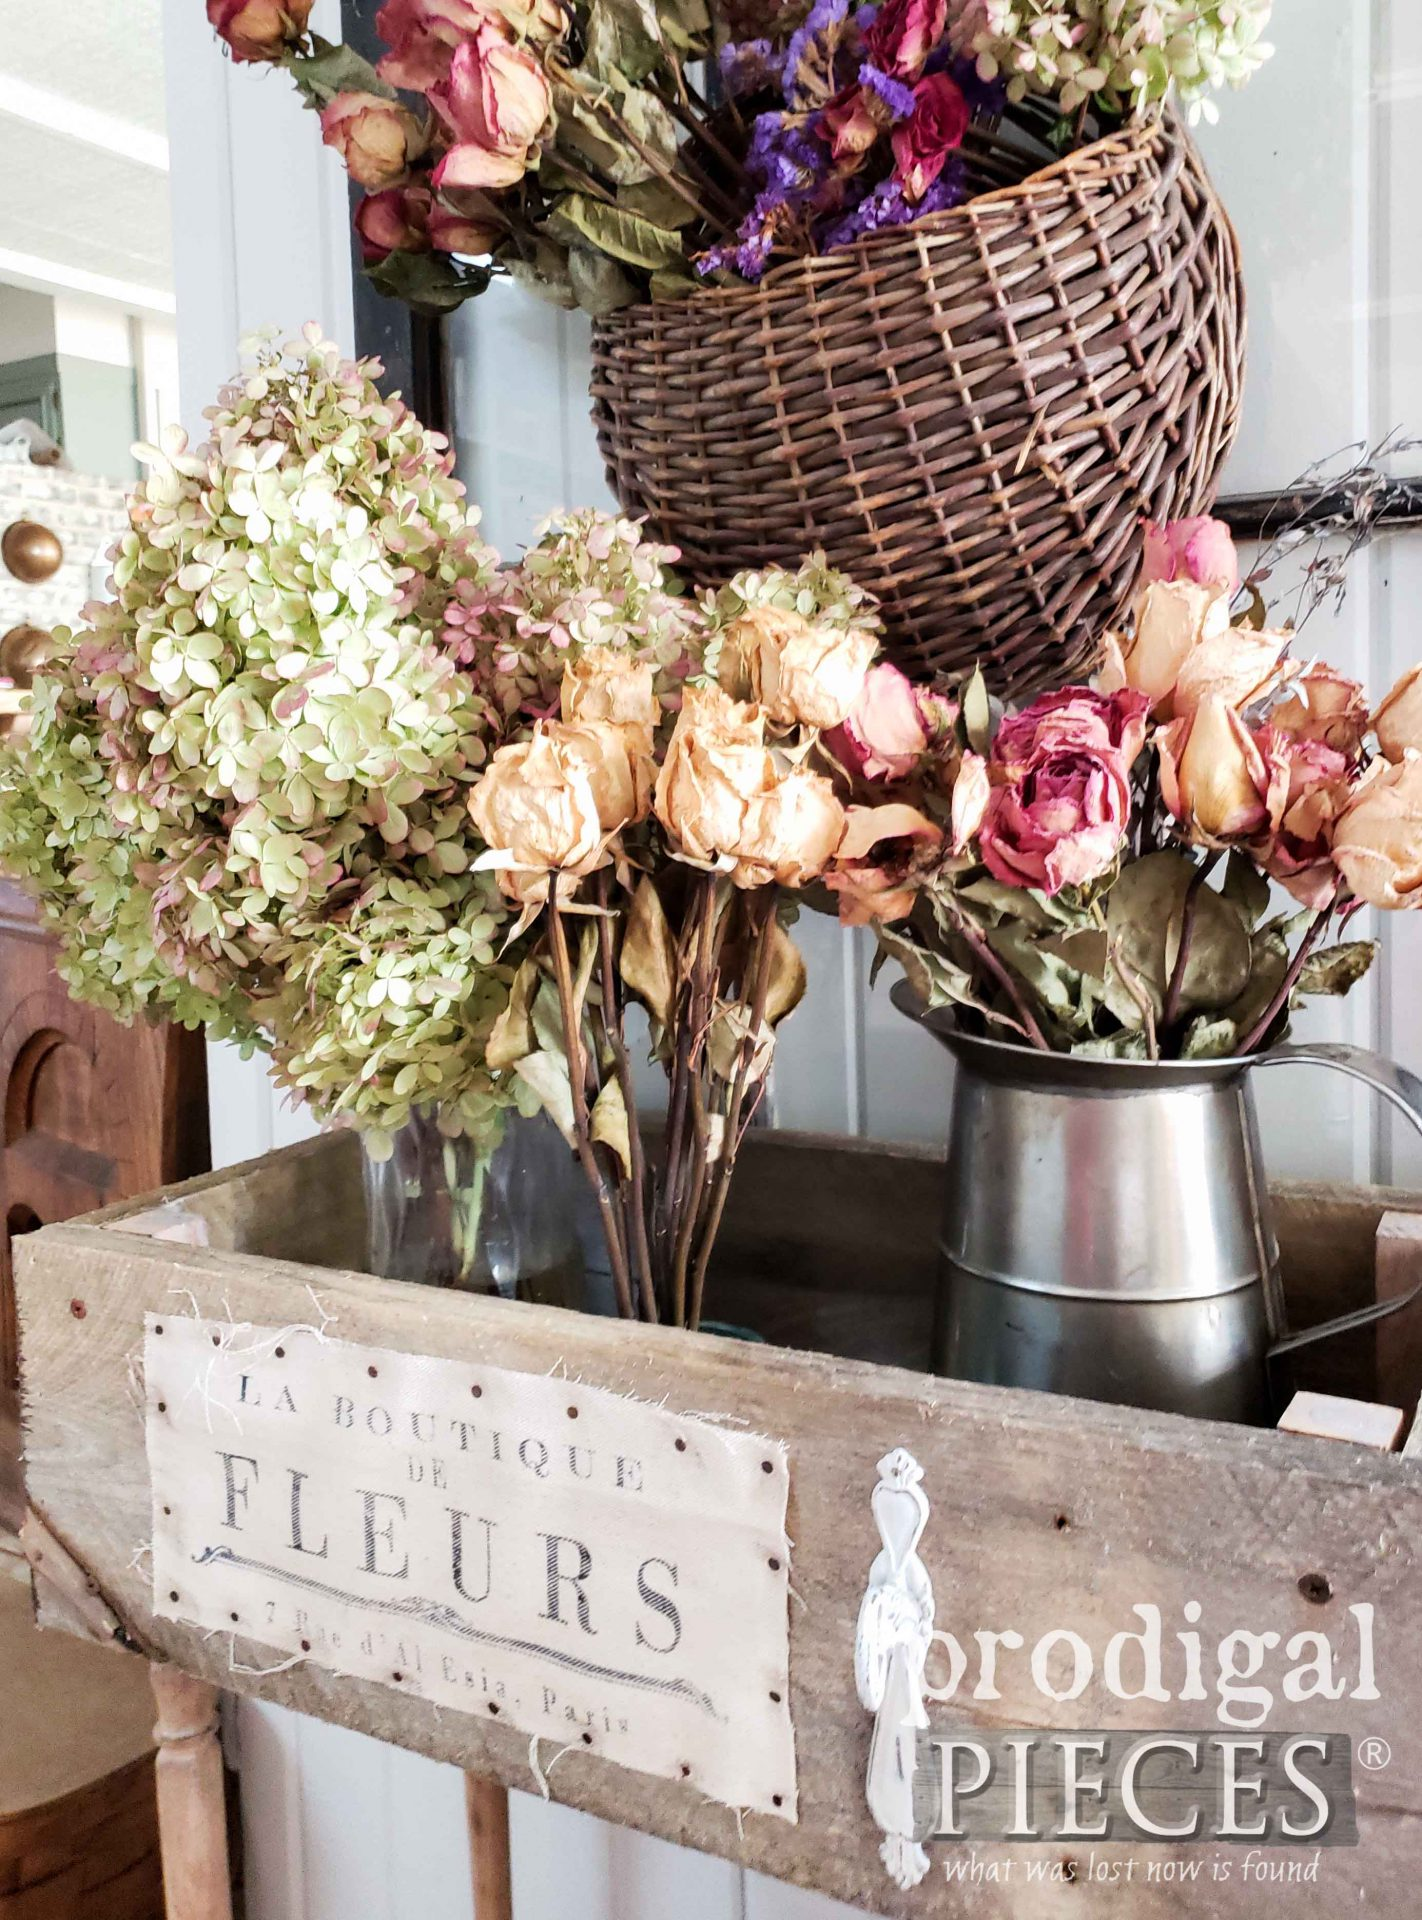 Rustic French Fleur Crate with Dried Florals by Larissa of Prodigal Pieces | prodigalpieces.com #prodigalpieces #flowers #farmhouse #home #handmade #homedecor